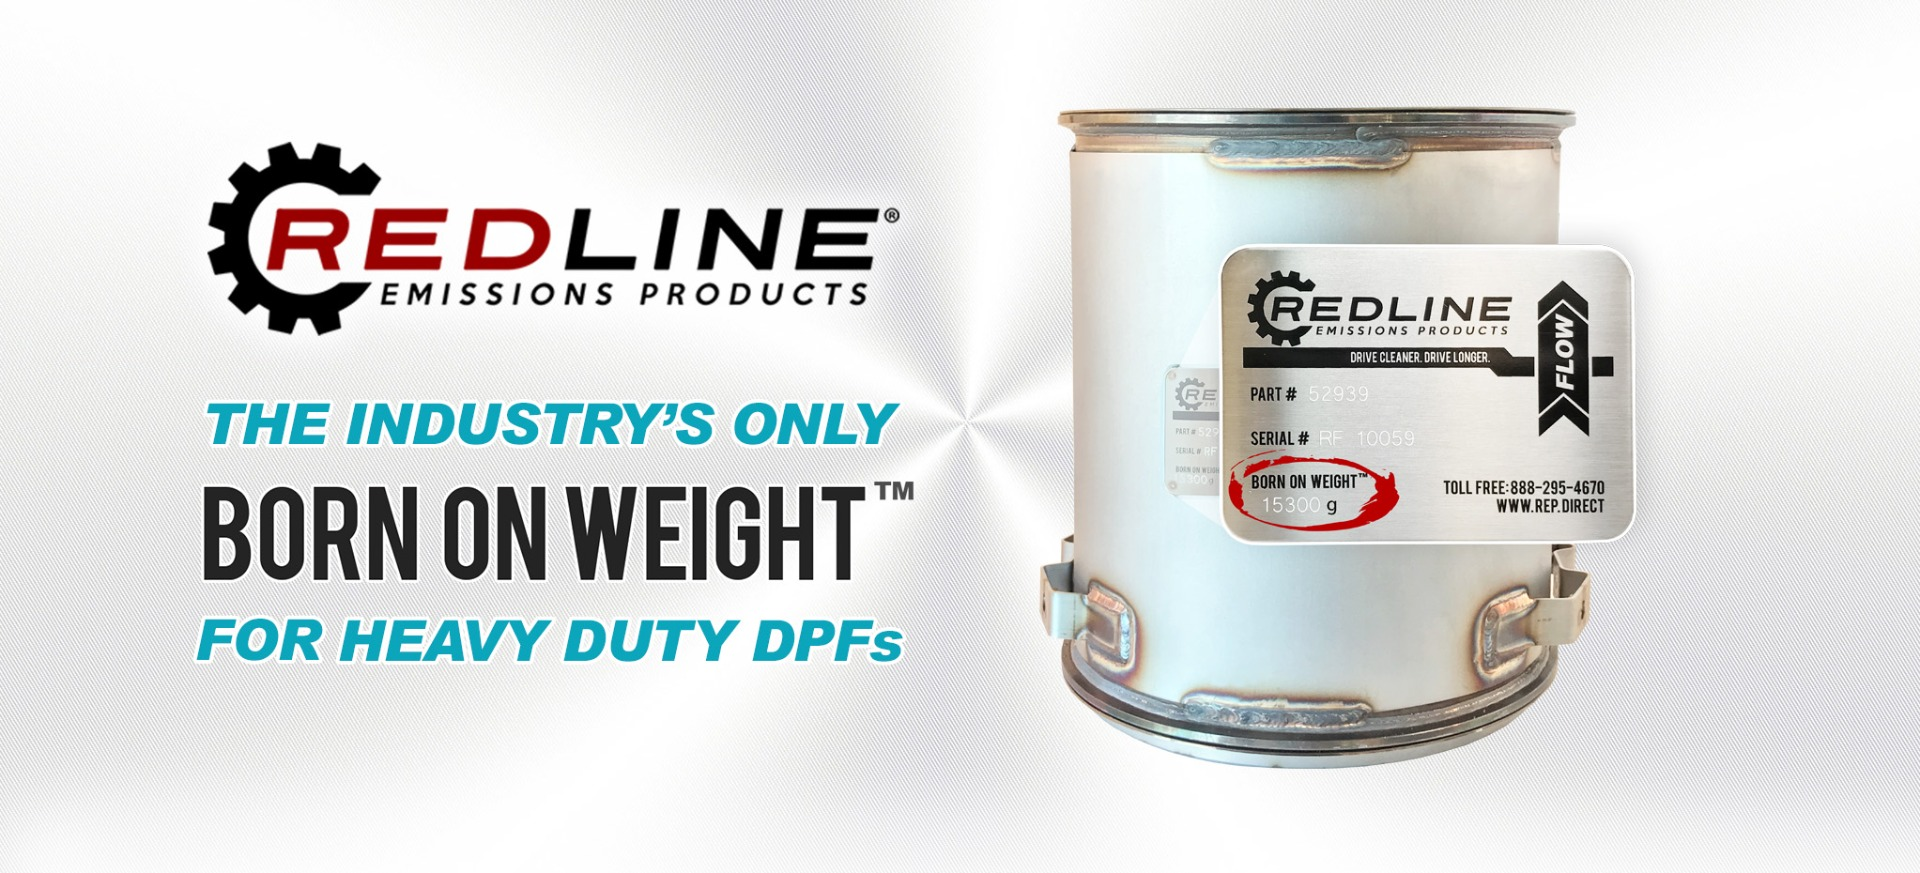 Redline Emissions Products